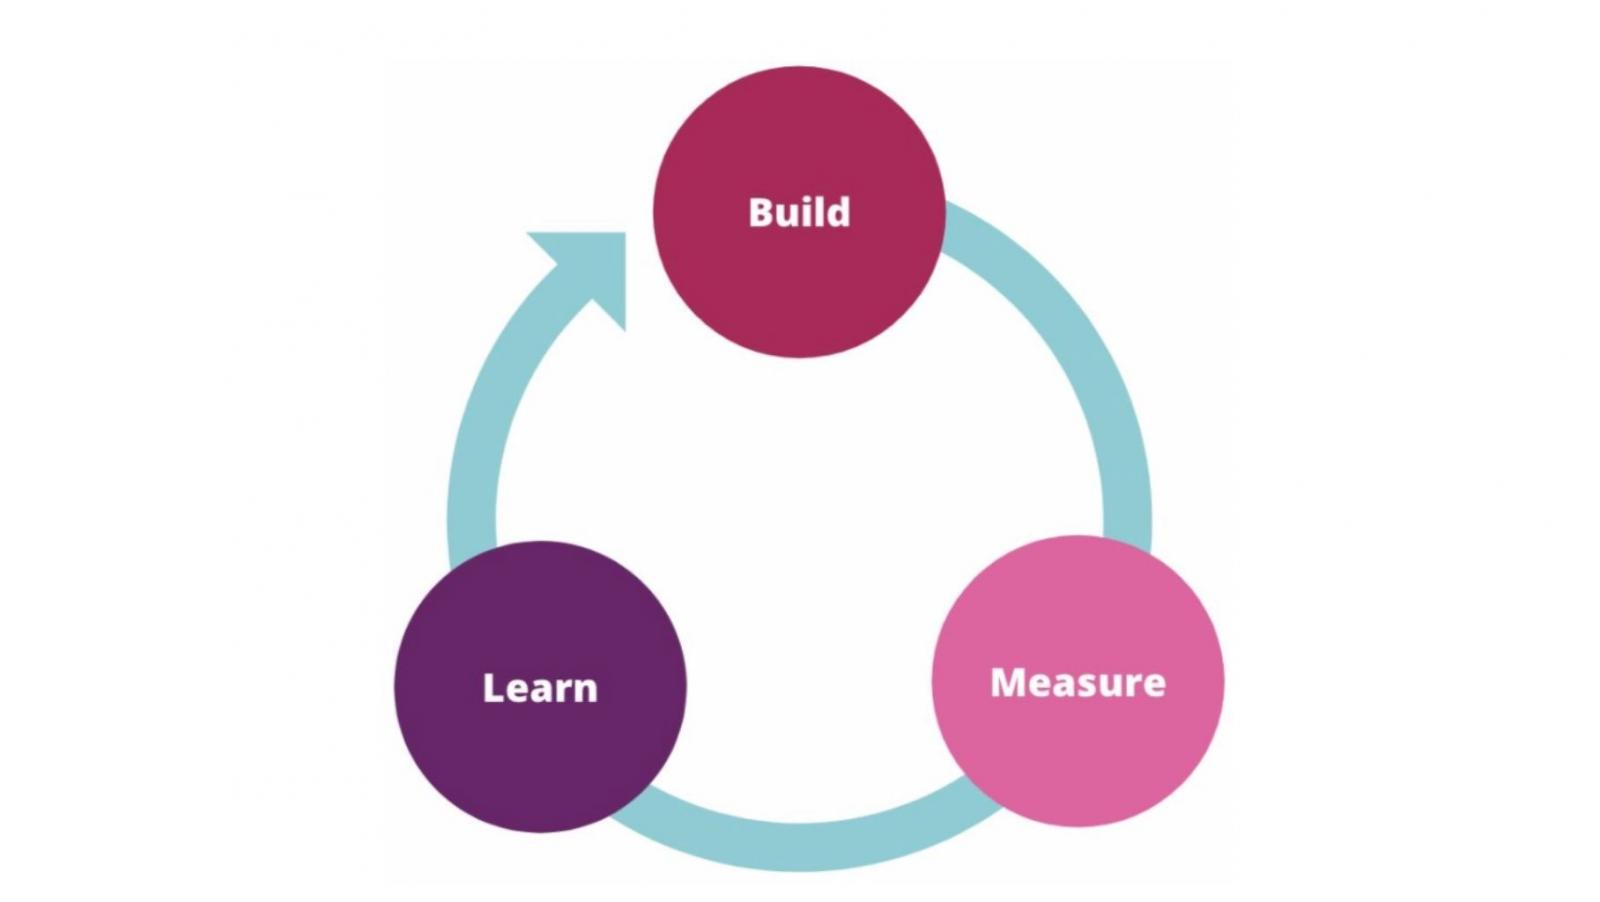 Three step Lean Startup circle diagram to show the Build - Measure - Learn process